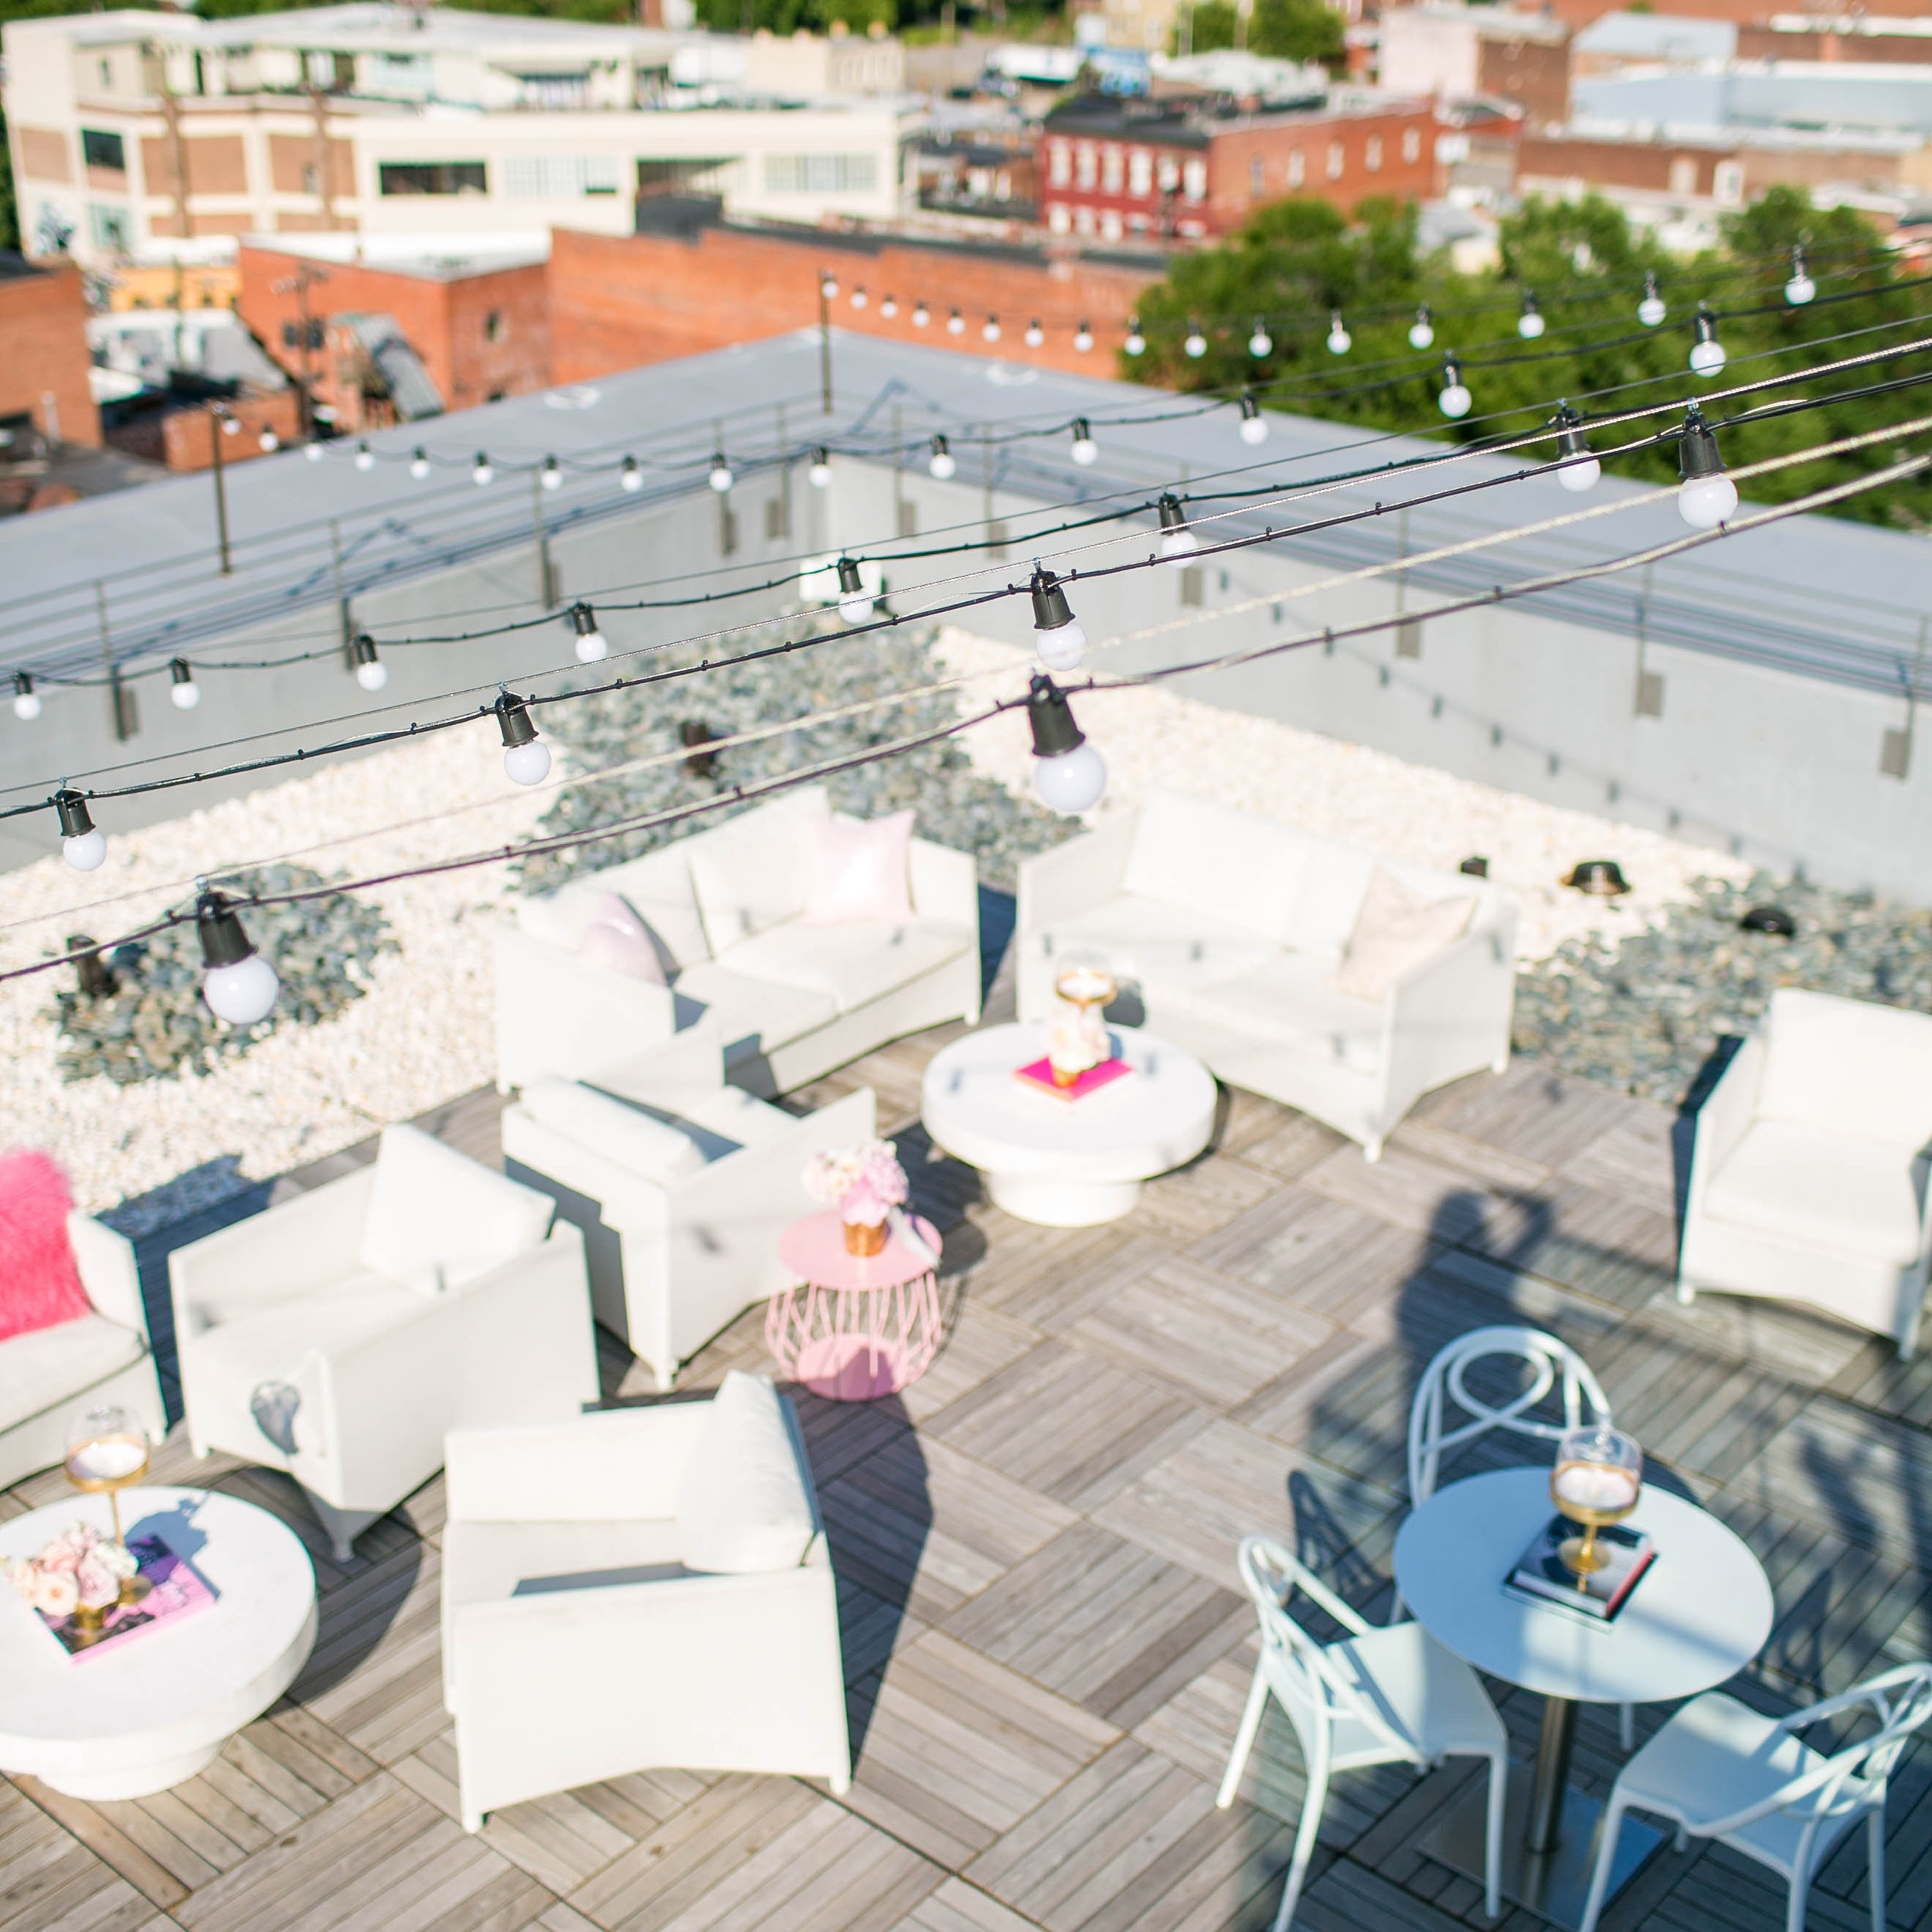 You CANNOT beat this rooftop view of #RVA! Quirk Hotel is definitely the place to be this summer from its chic atmosphere and stunning city views.